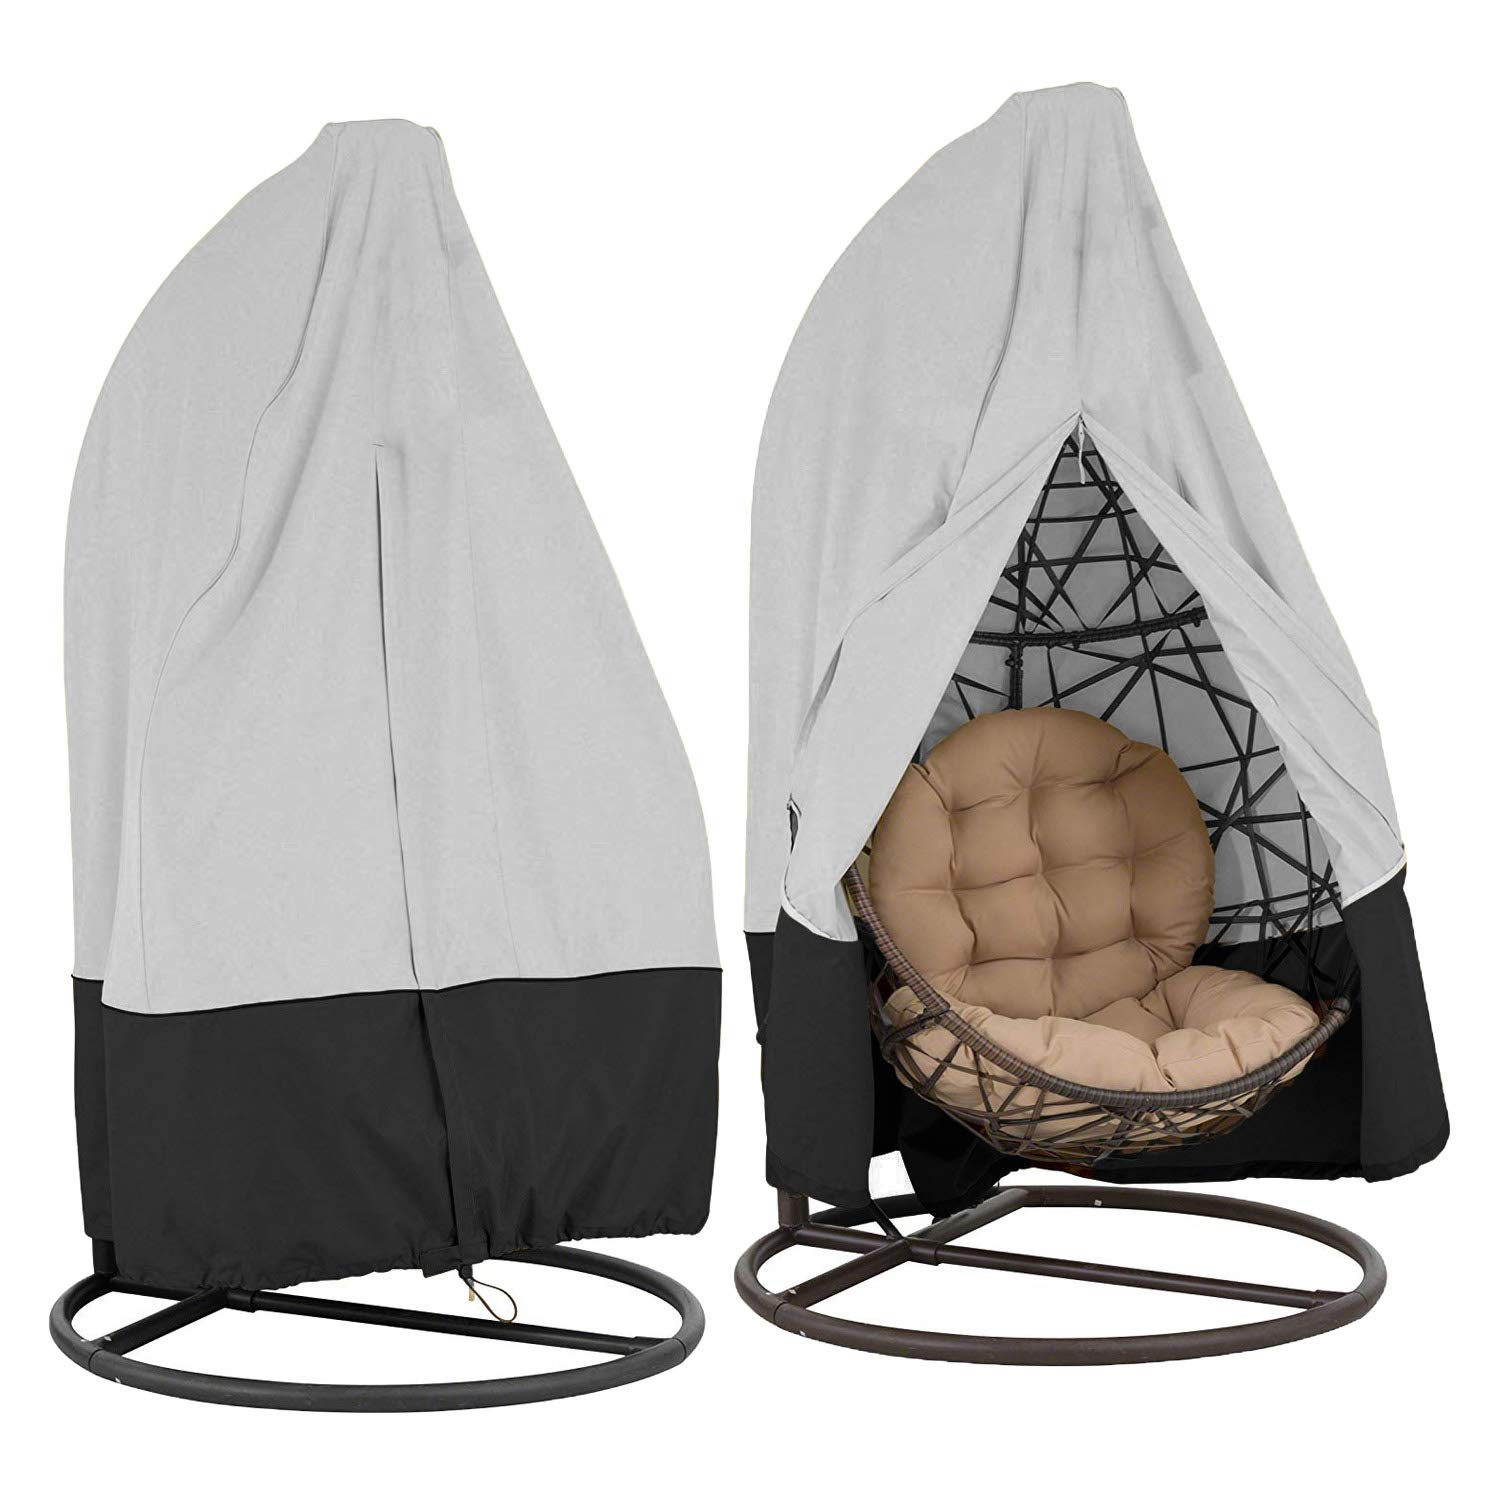 Honcenmax Patio Hanging Chair Cover Cocoon Egg Chair Cover For